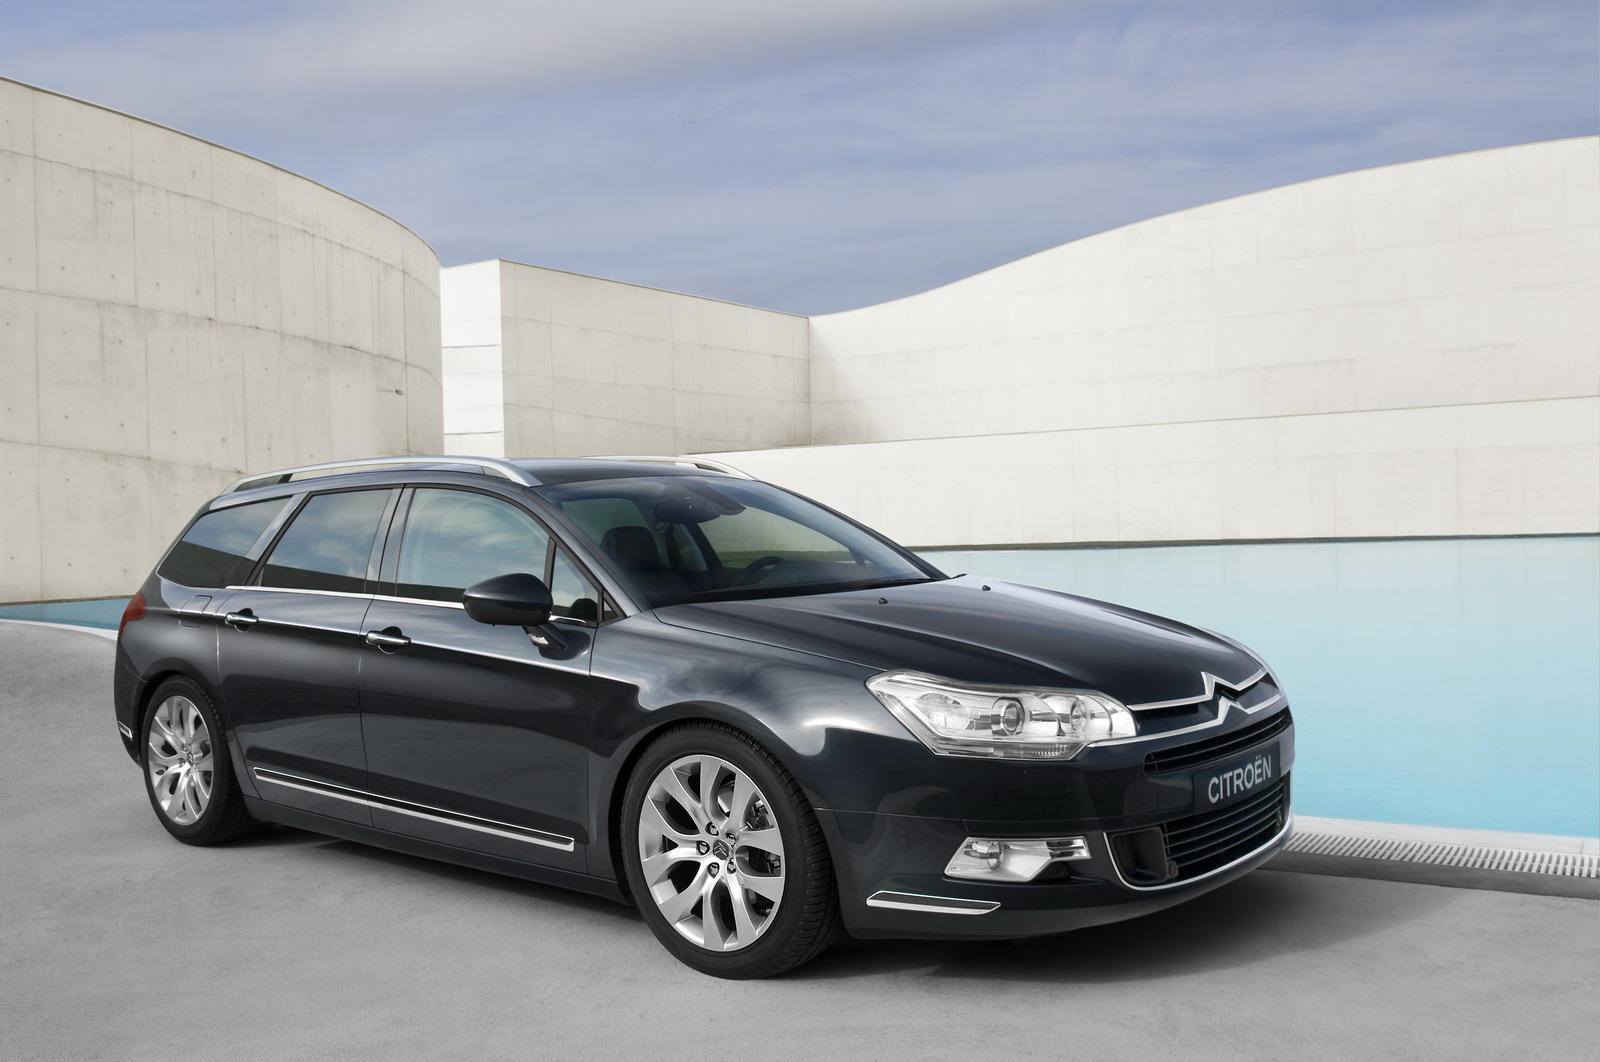 citroen c5 car technical data car specifications vehicle fuel consumption information